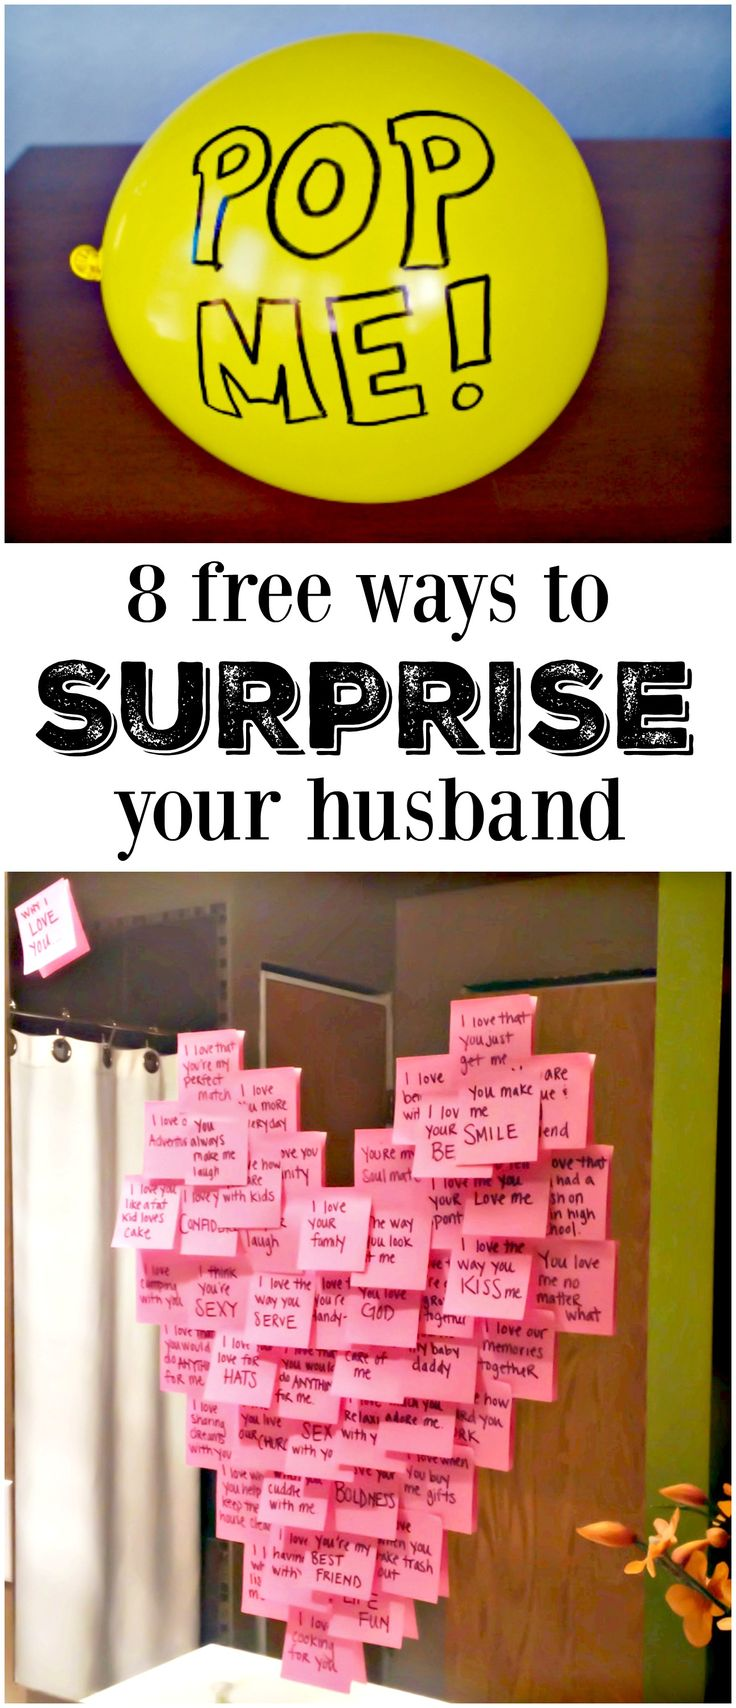 8 Meaningful Ways to Make His Day | DIY Ideas | Pinterest ...